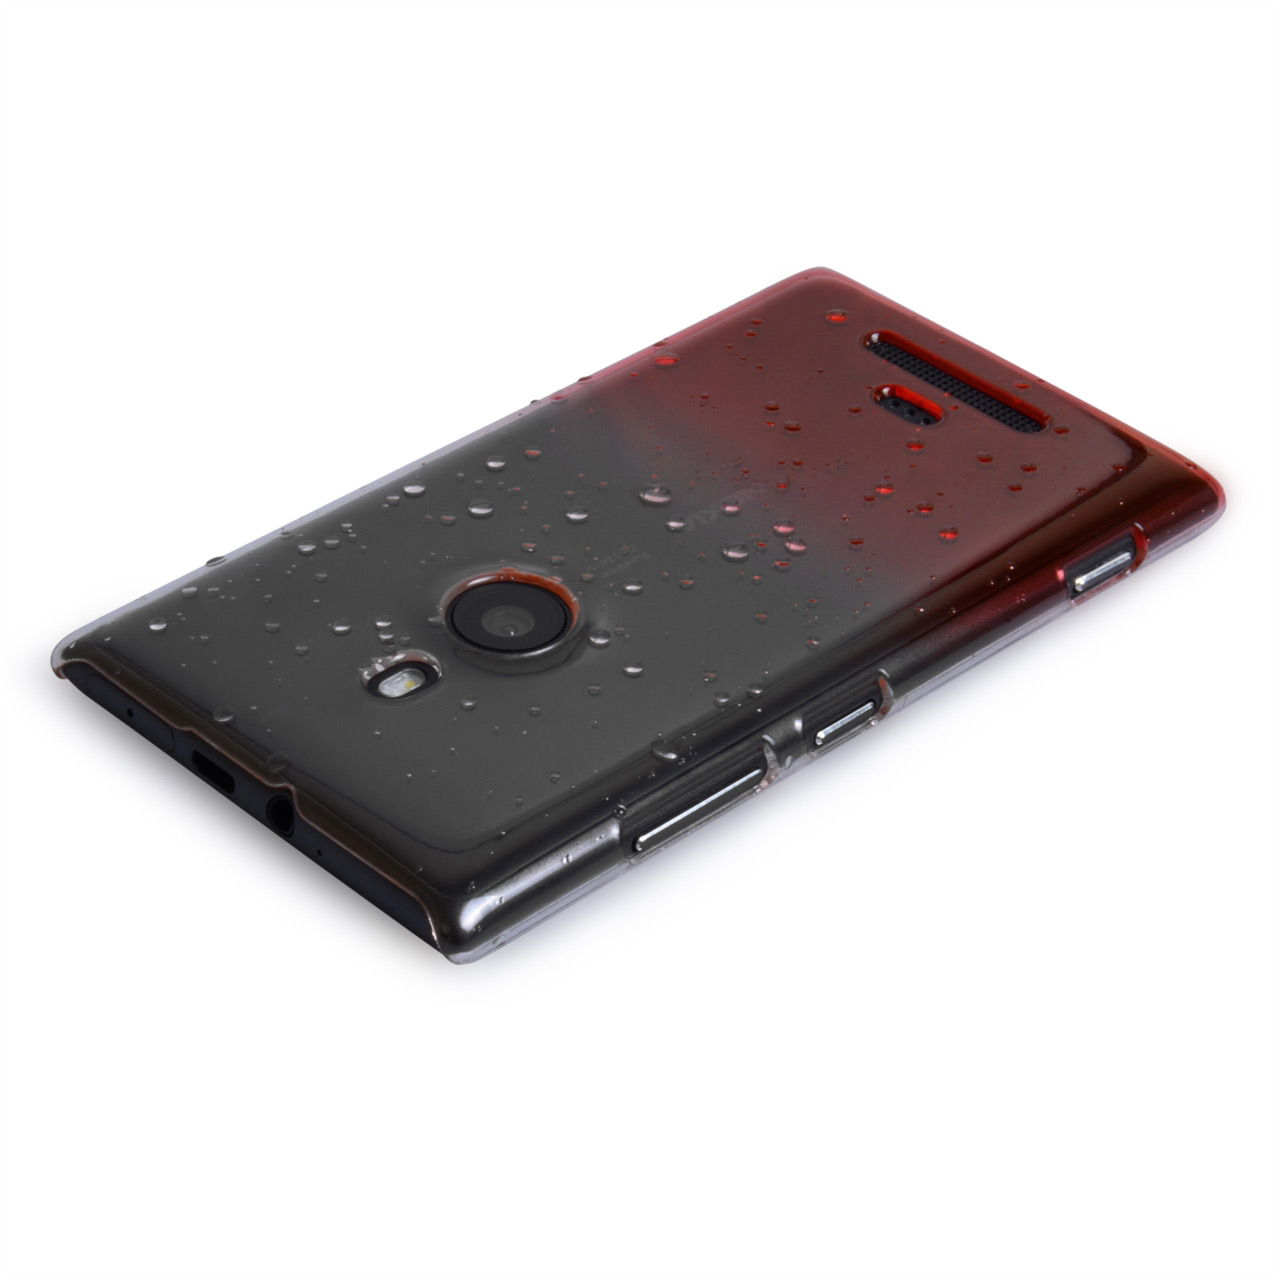 YouSave Accessories Nokia Lumia 925 Raindrop Hard Case - Red